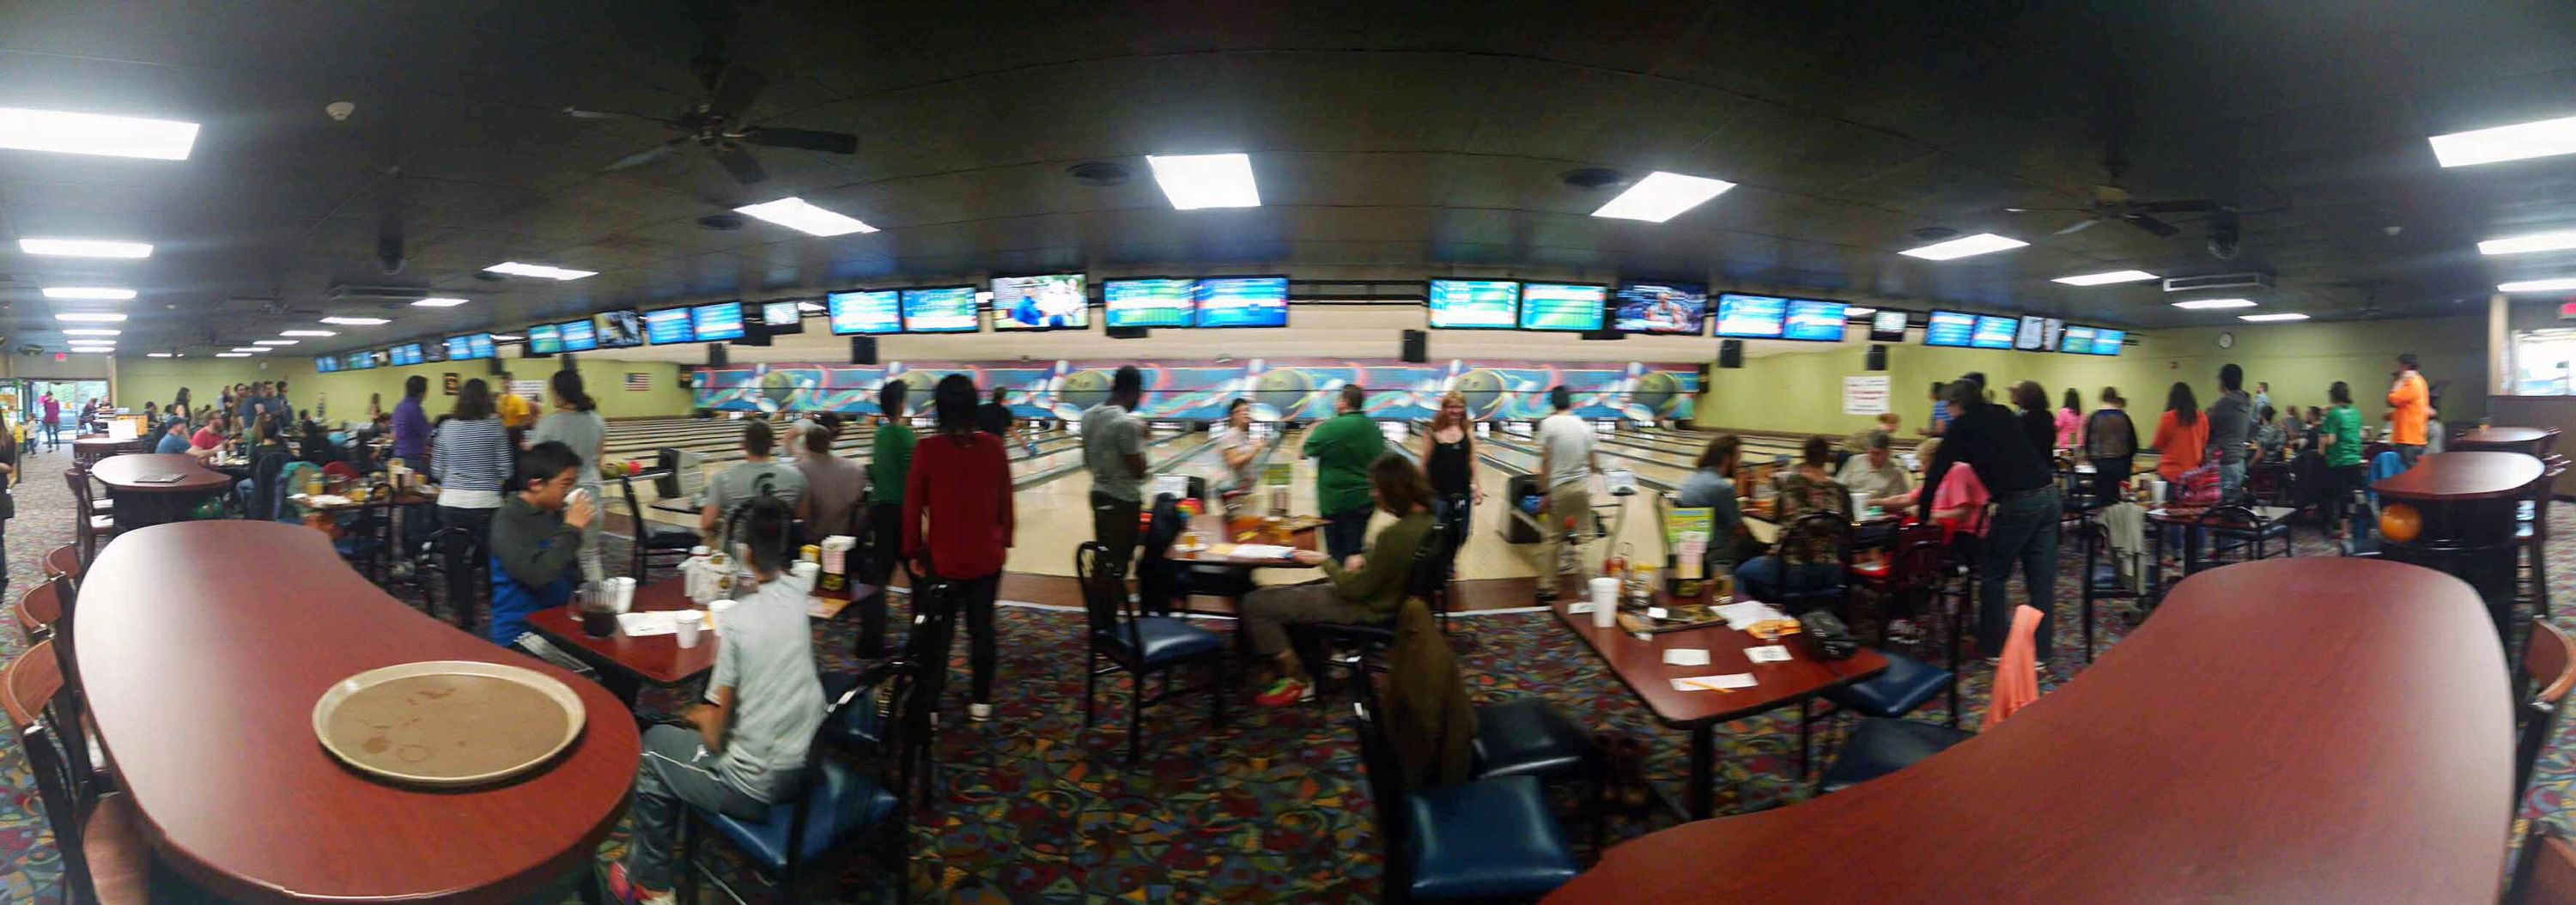 A panoramic image of all 24 lanes at the bowling alley.